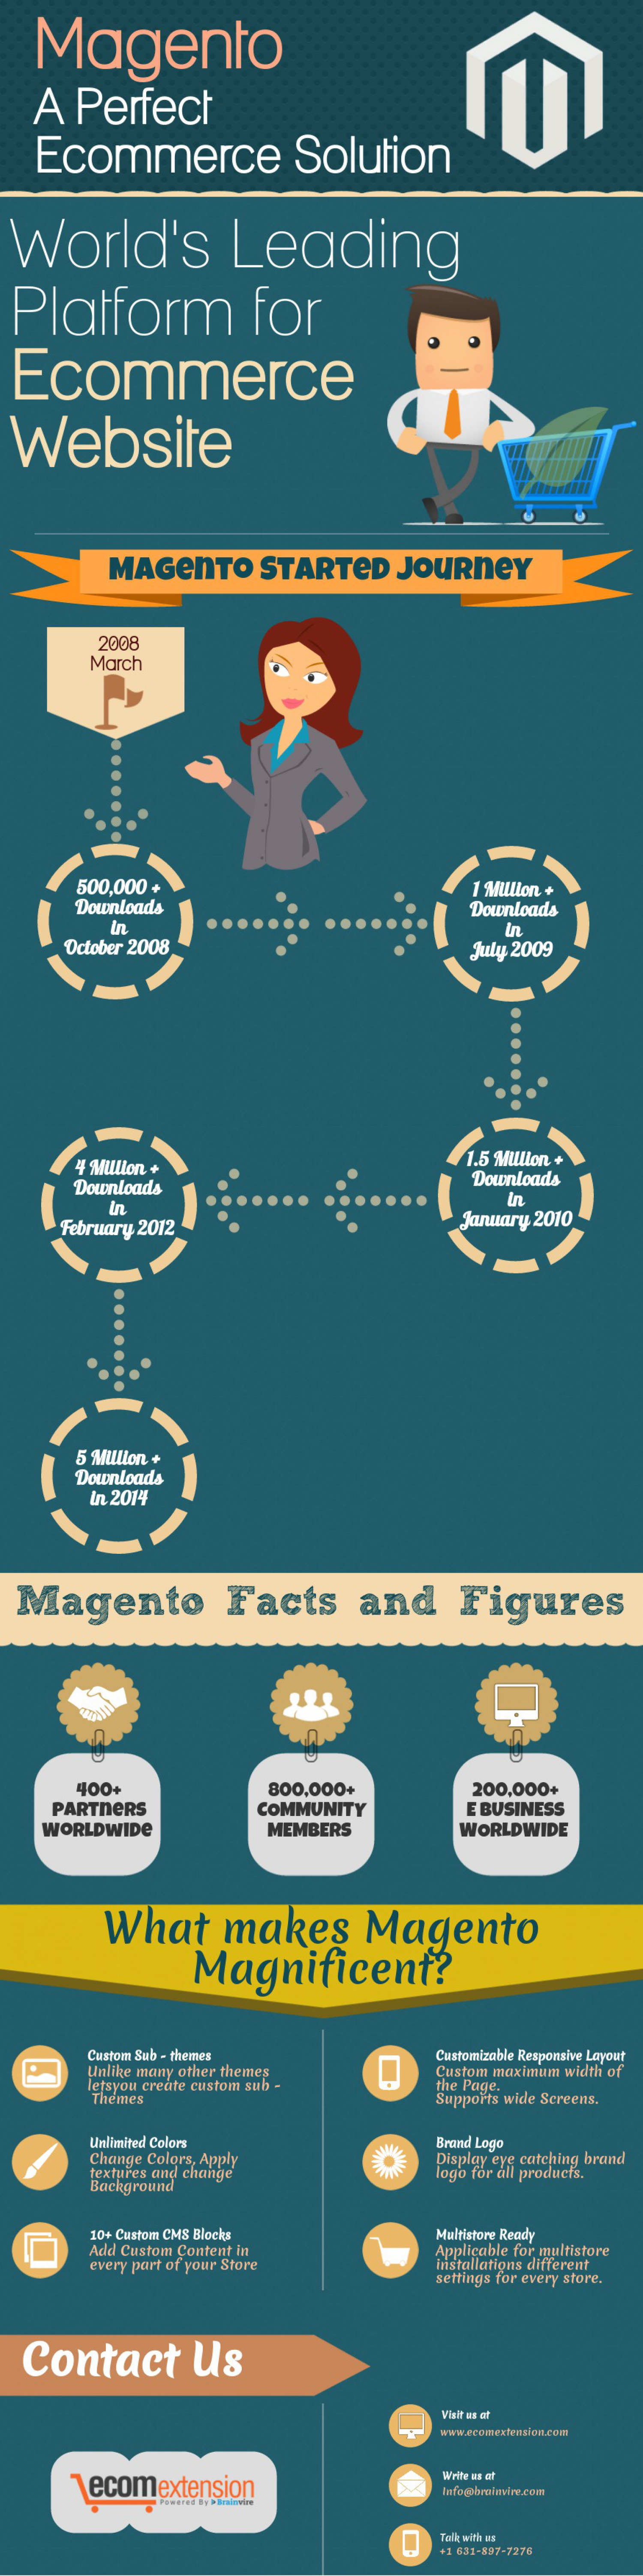 Magento-A Perfect Ecommerce Solution Infographic